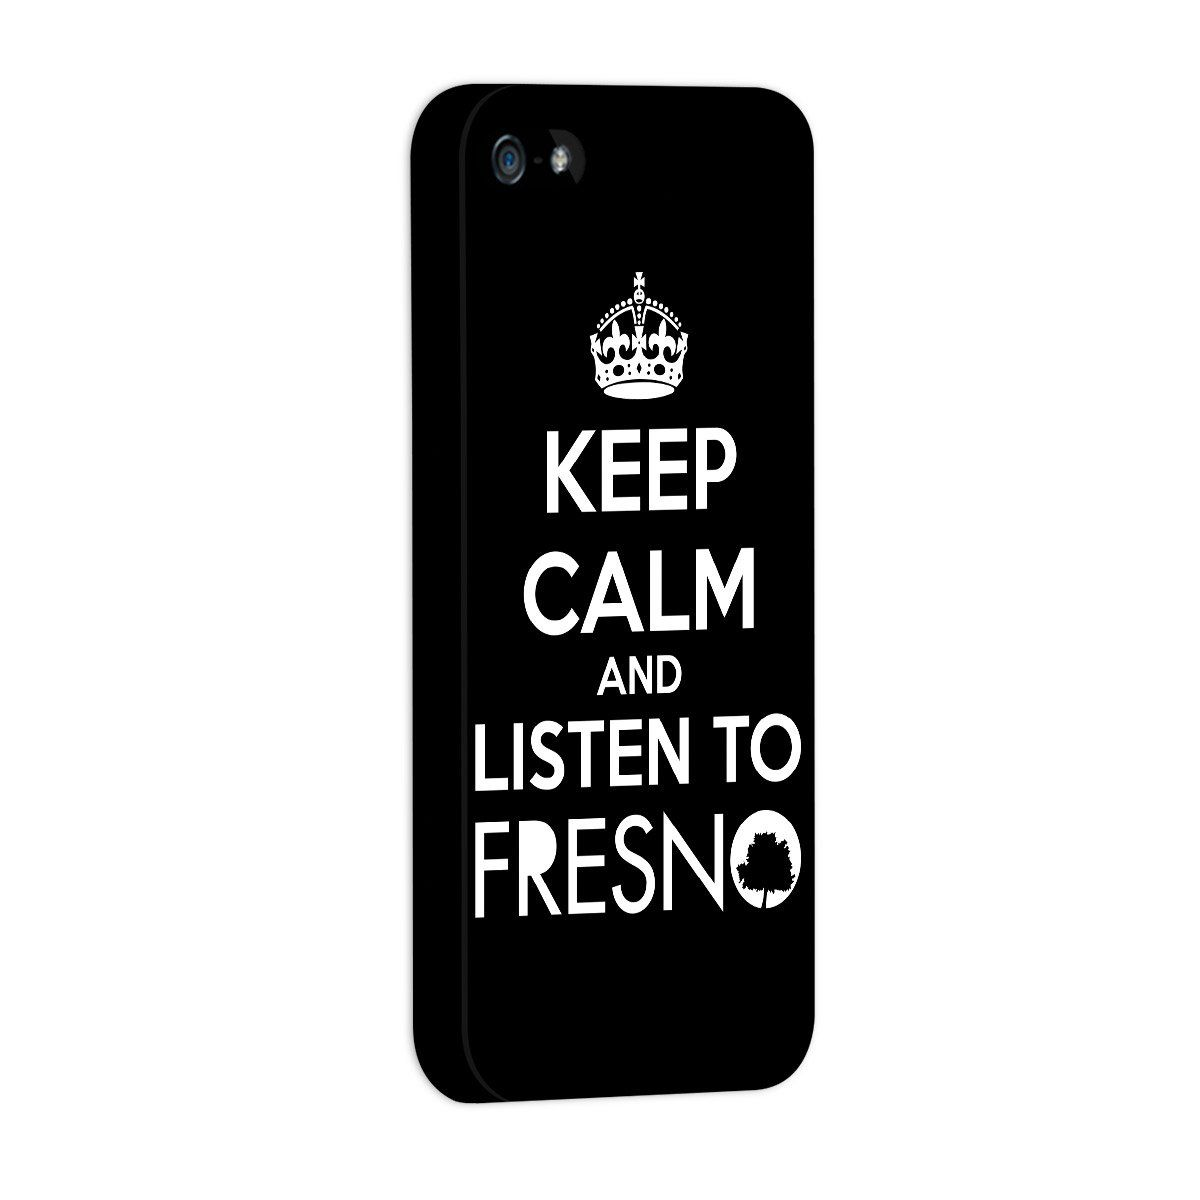 Capa de iPhone 5/5S Fresno - Keep Calm